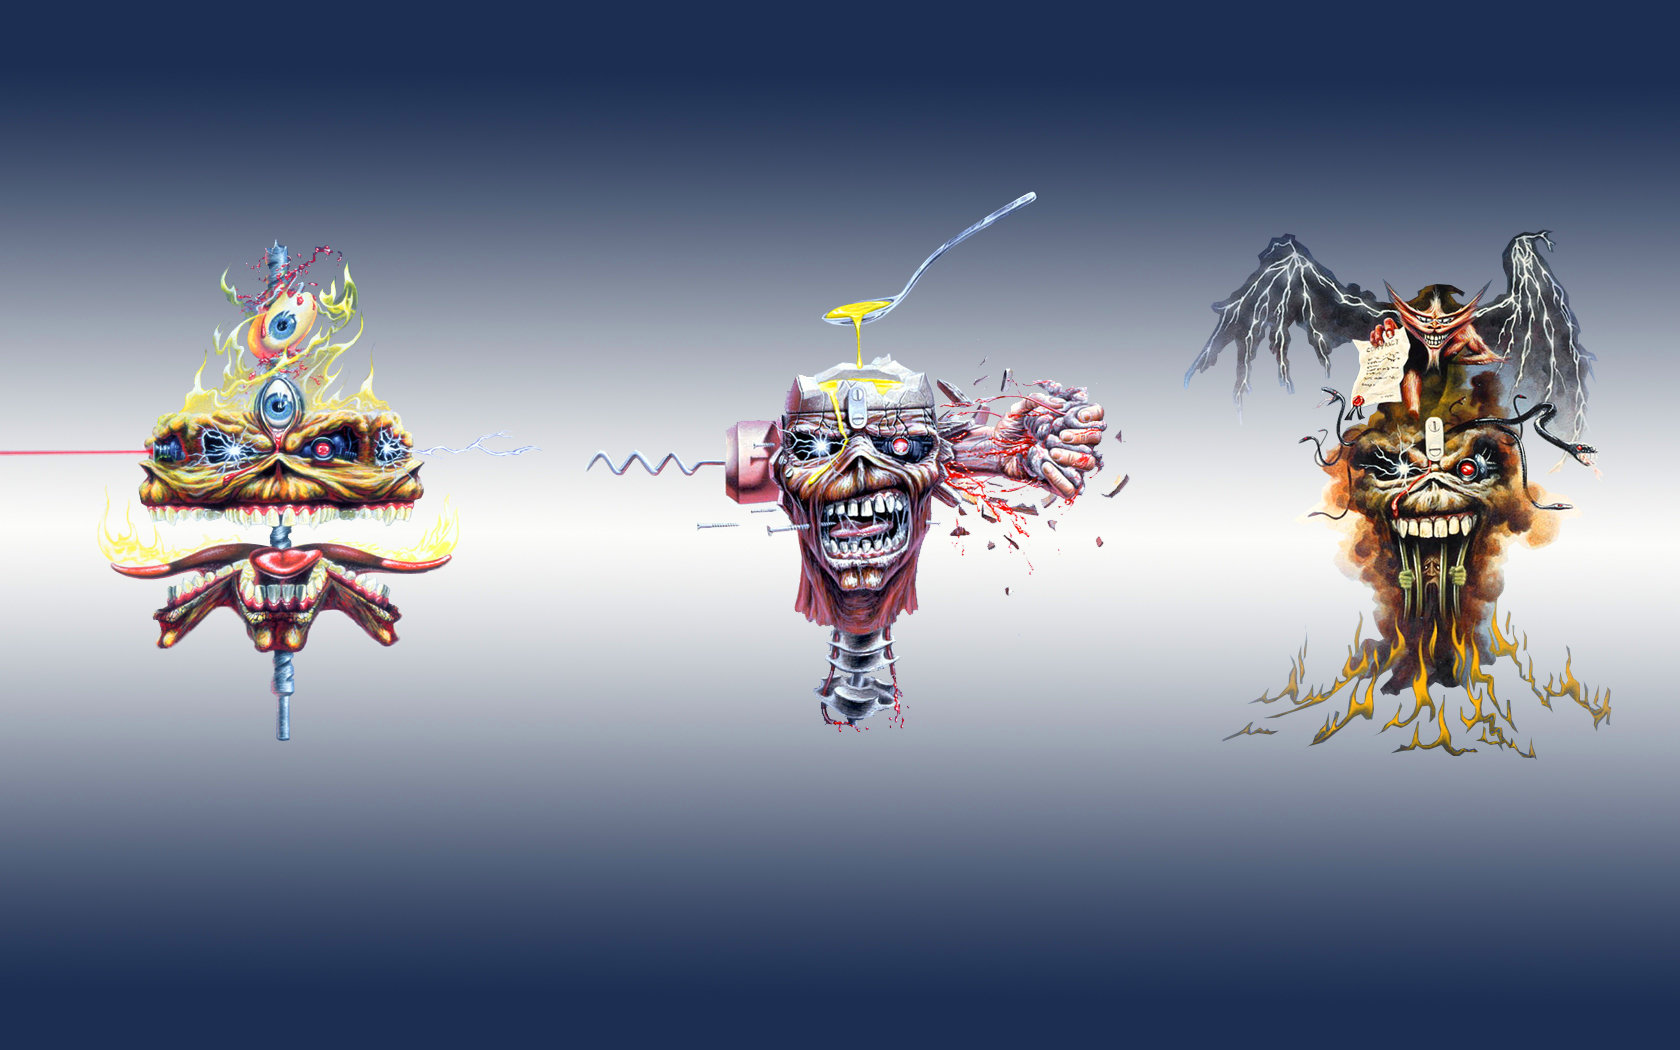 Download hd 1680x1050 Iron Maiden desktop background ID:72472 for free